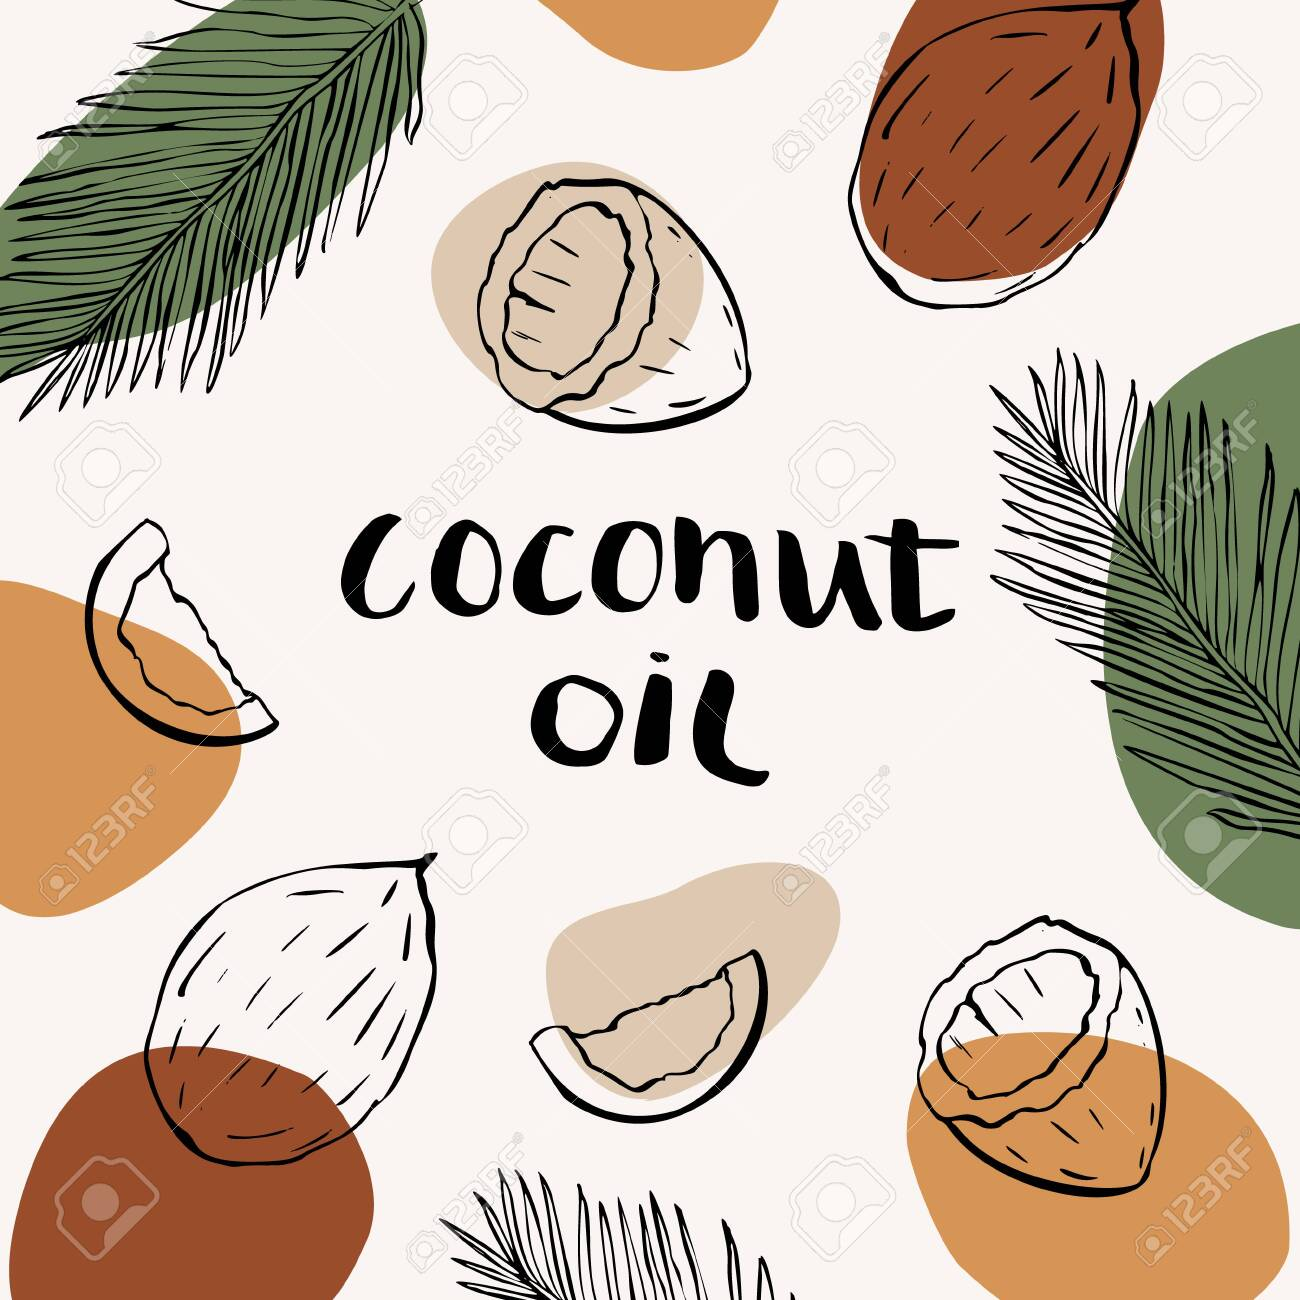 Vector packaging design and template for cosmetics labels and bottles with coconut oil. Abstract colorful background with doodle hand drawn elements. background and stickers for natural, organic cosmetics, food - 145325647